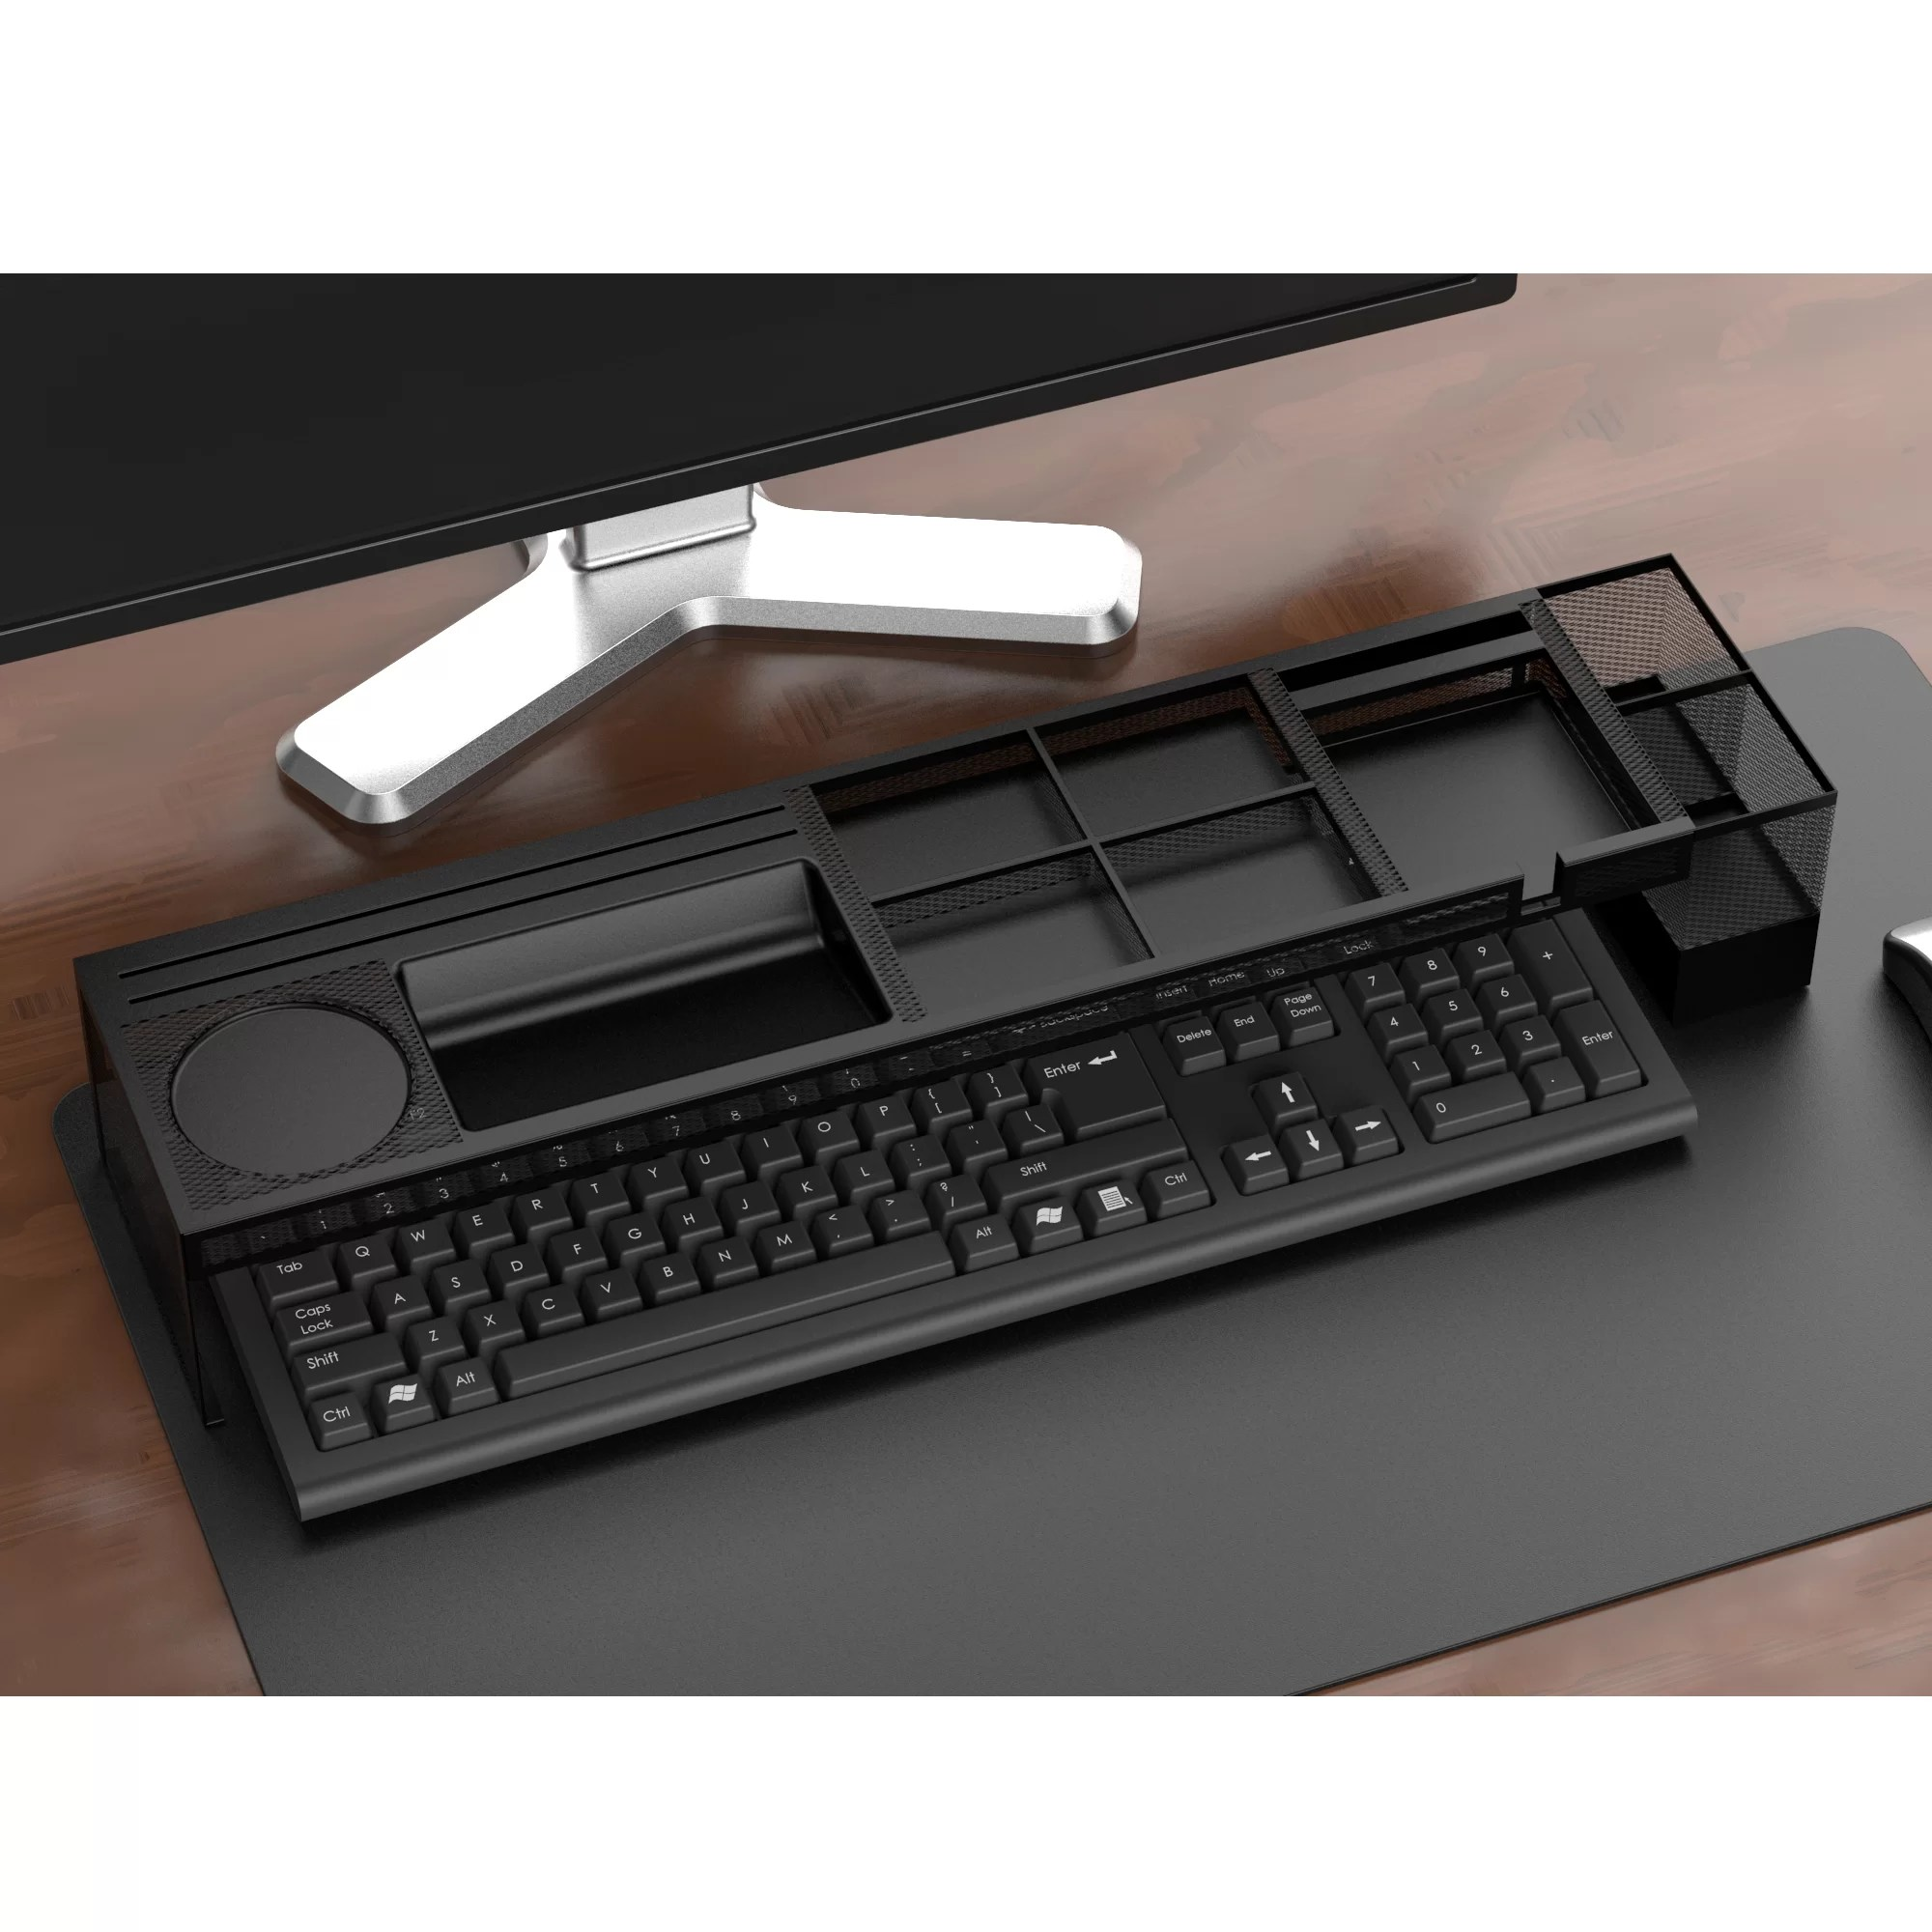 Matching Office Desk Accessories Axel Metal Desk Organizer With Charging Station